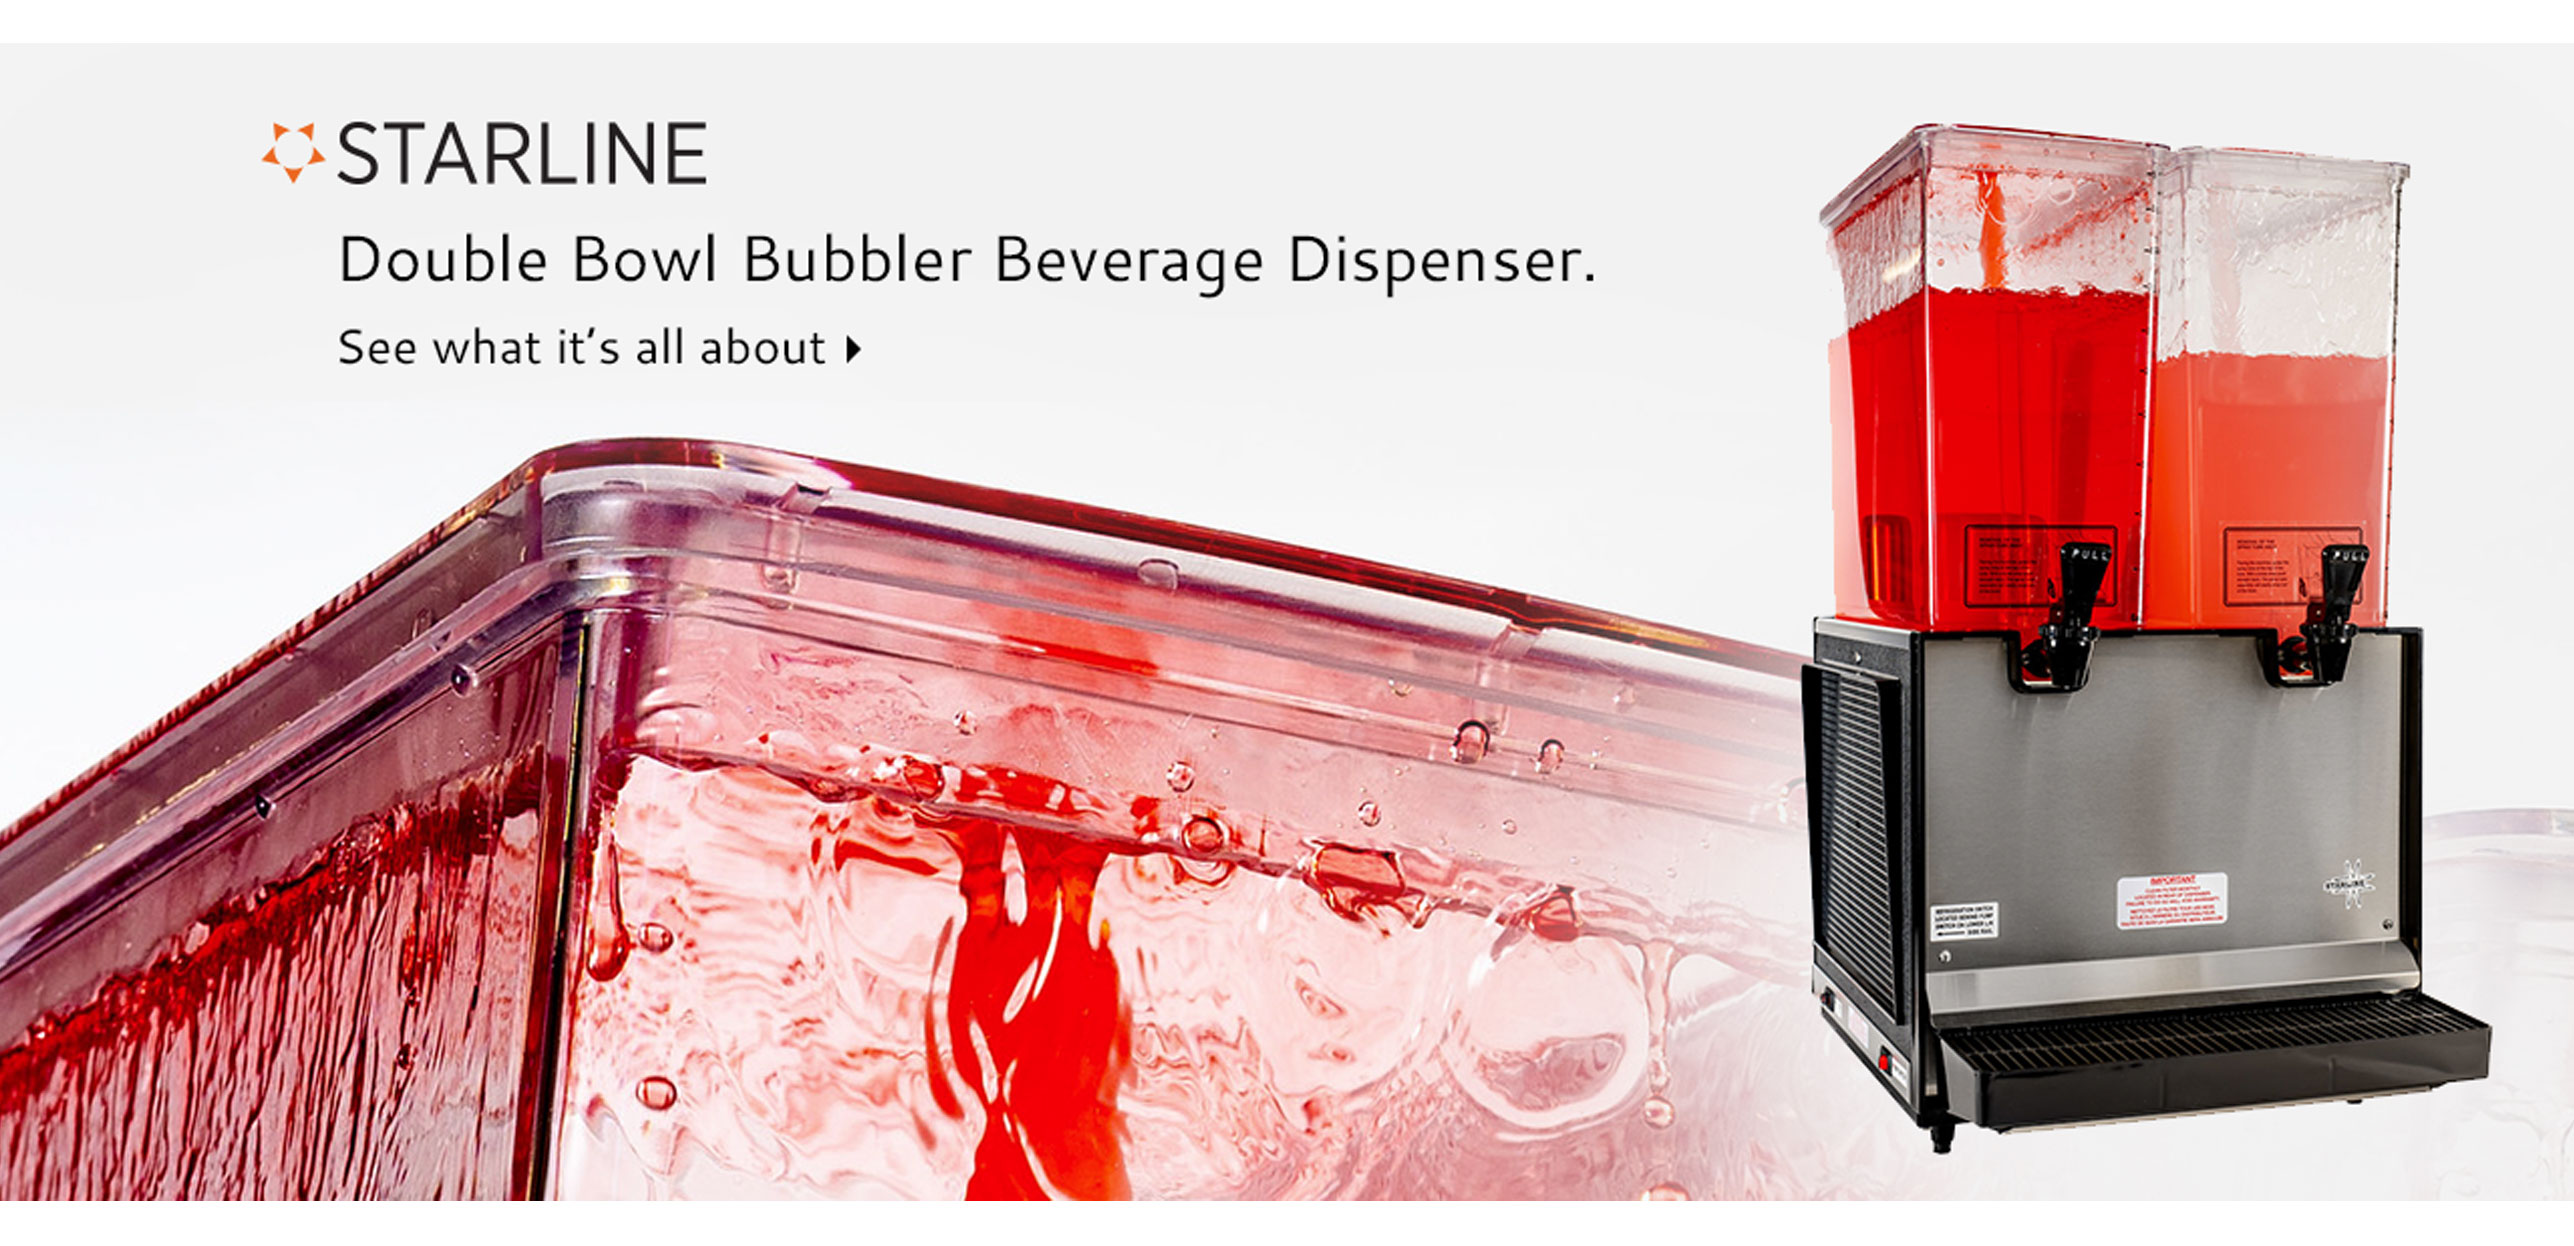 Starline S2 Double Bowl Bubbler Beverage Dispenser